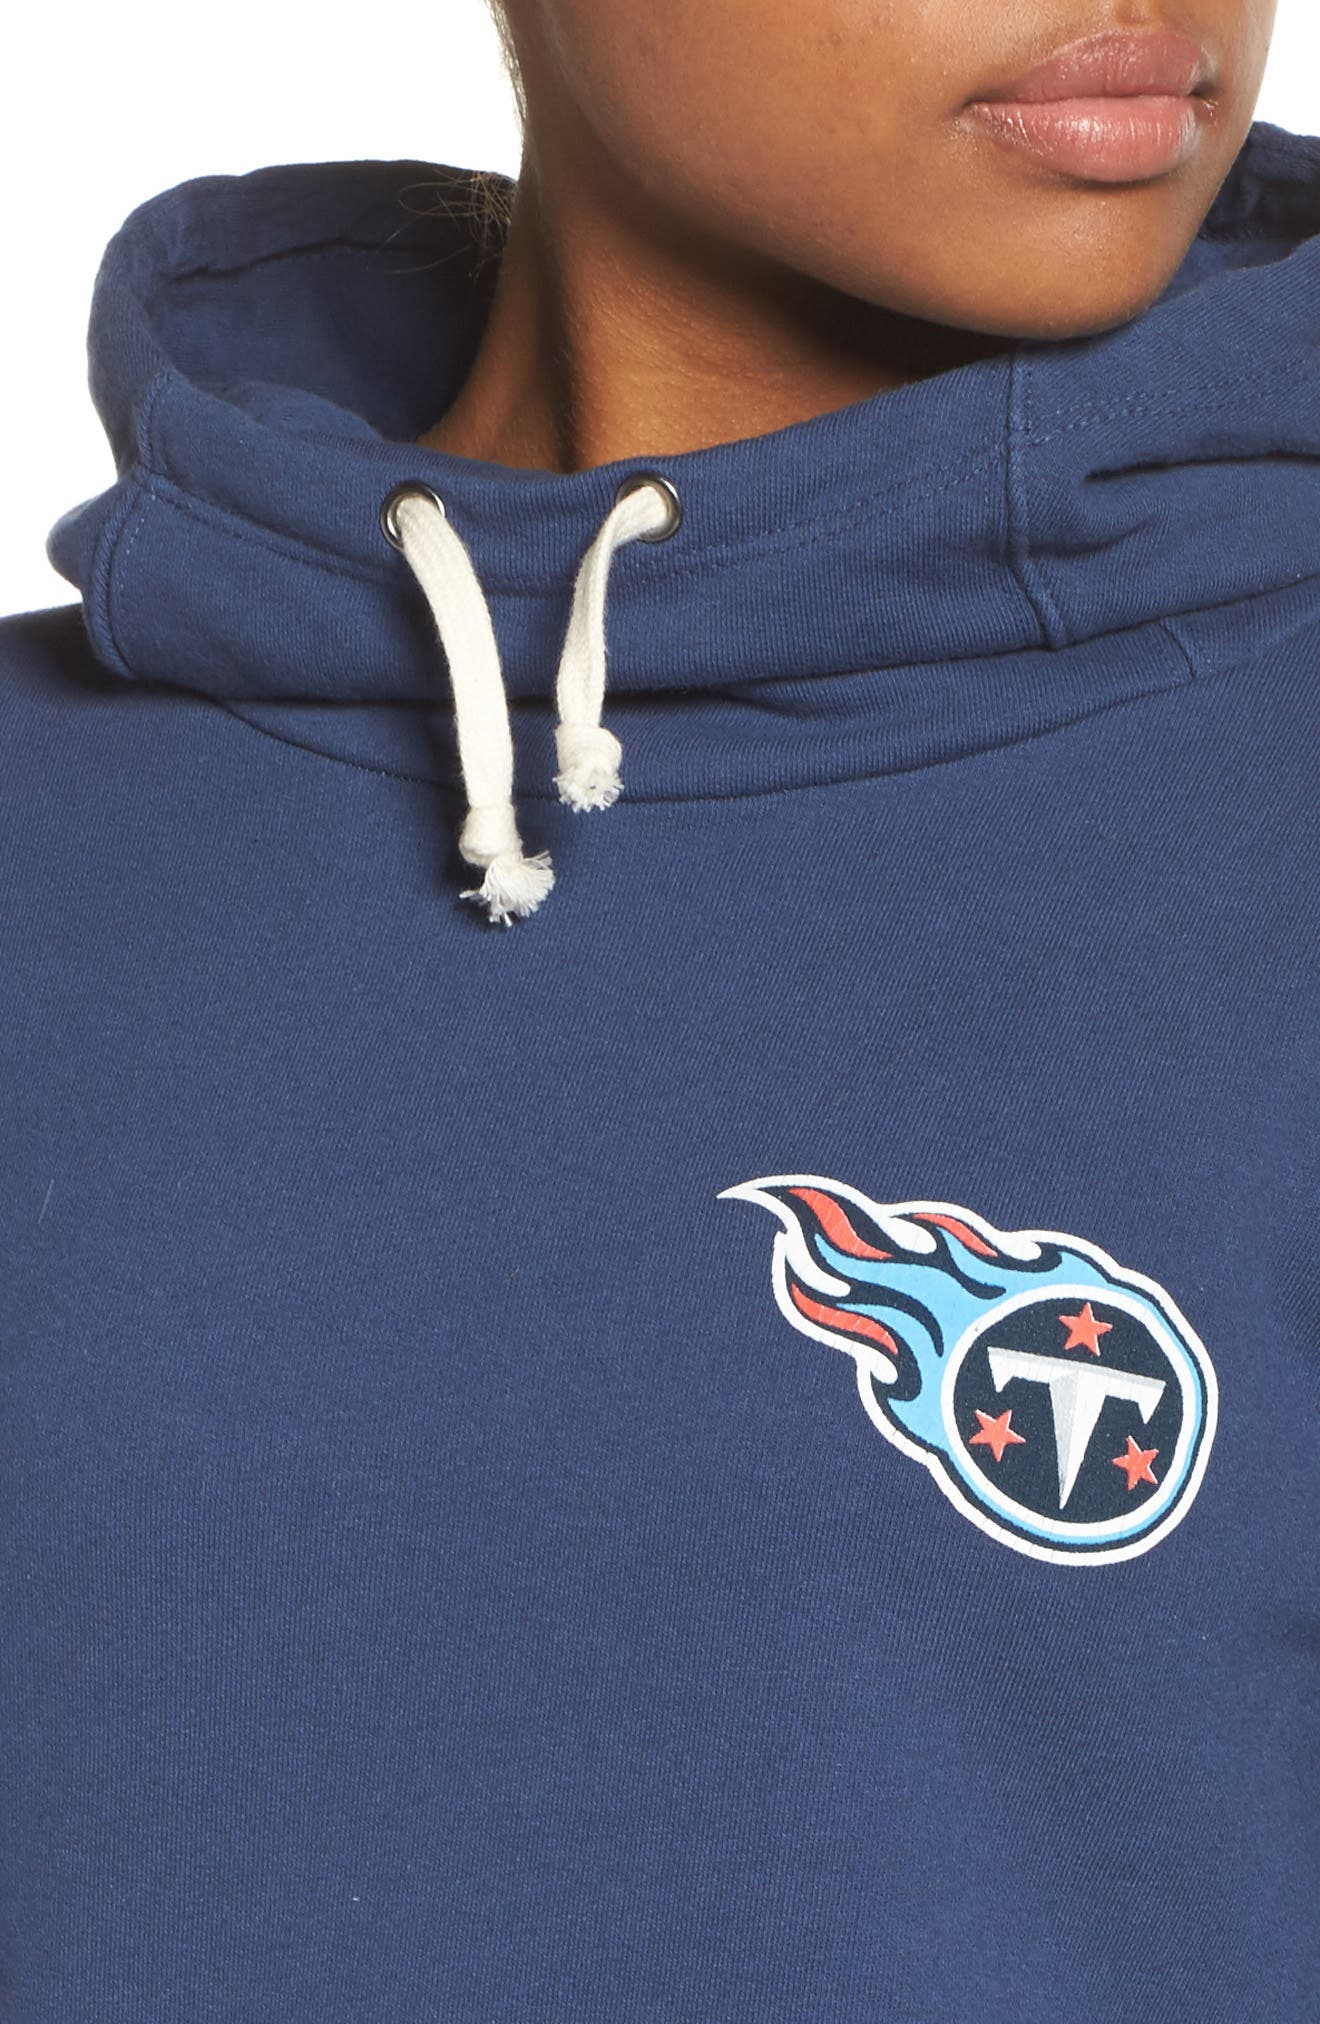 NFL Tennessee Titans Sunday Hoodie,                             Alternate thumbnail 5, color,                             True Navy